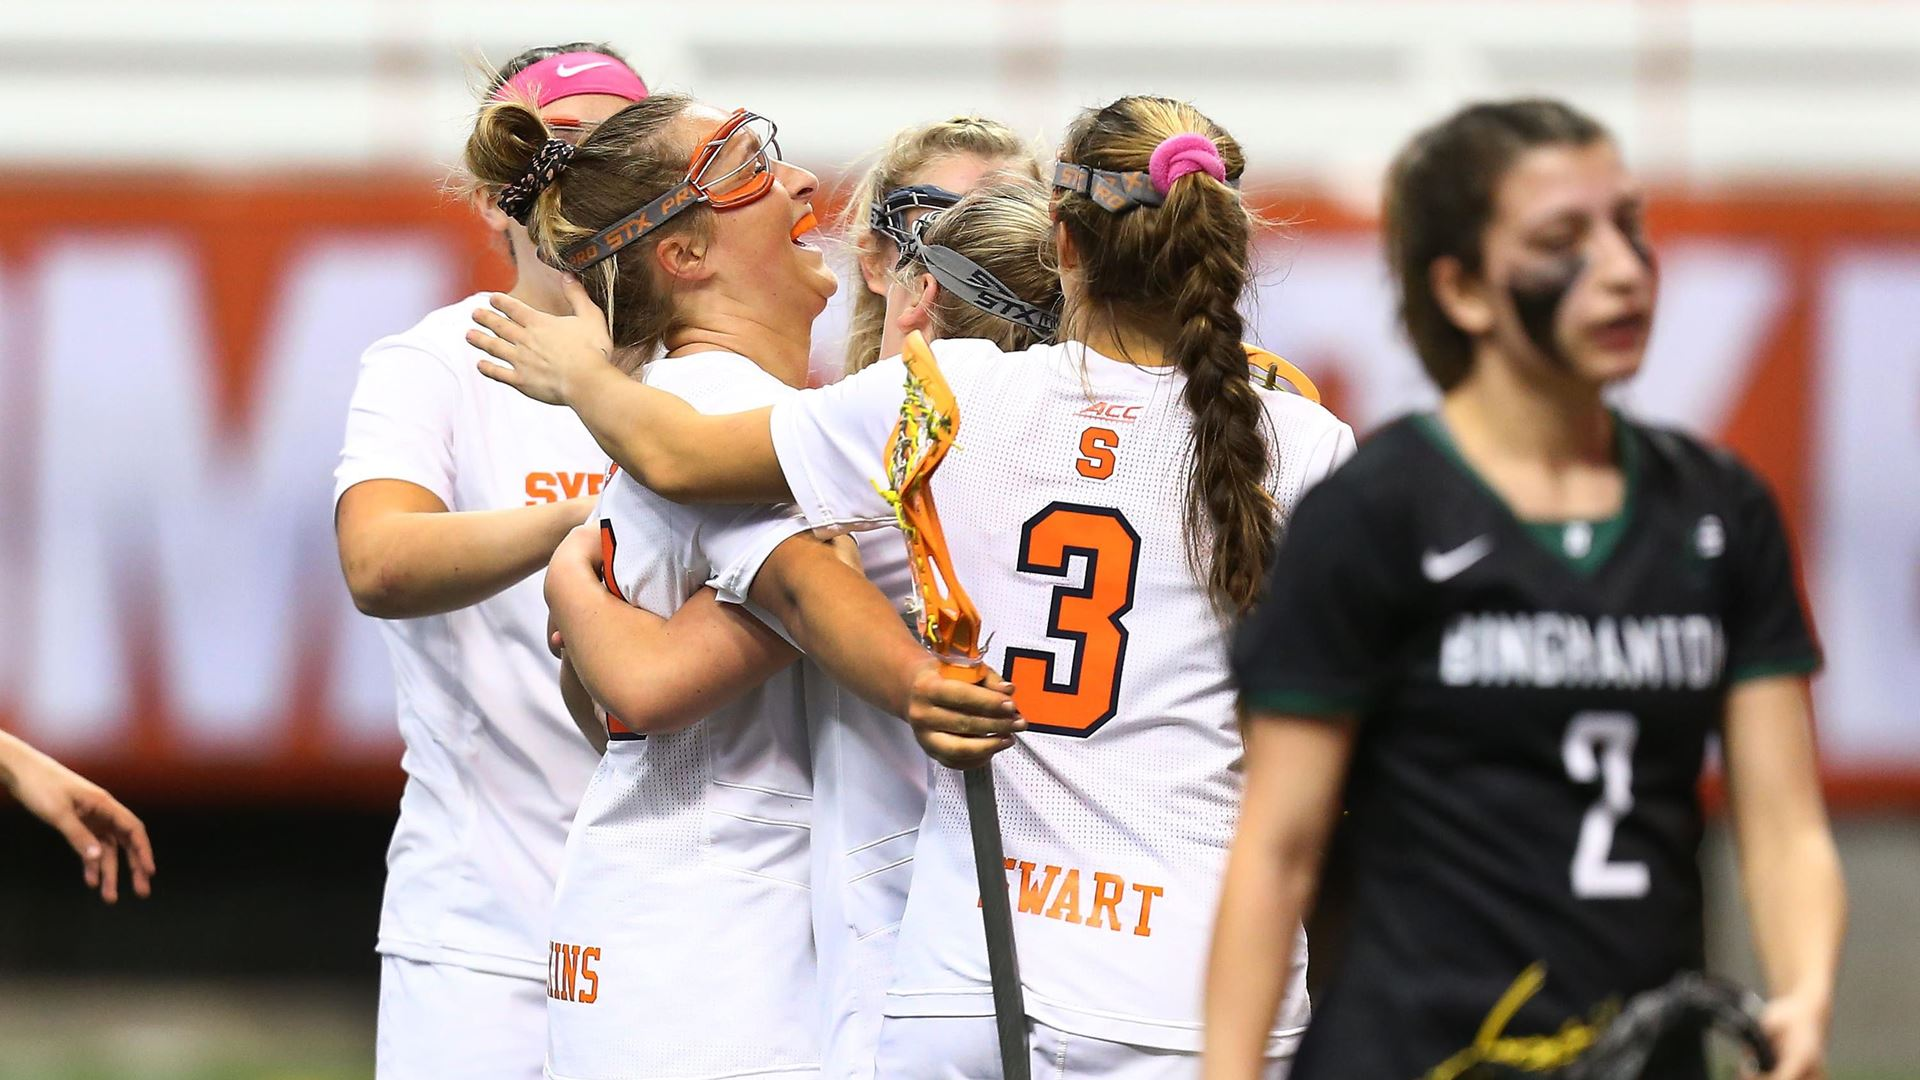 Syracuse Women's Lacrosse cruises to win over Binghamton